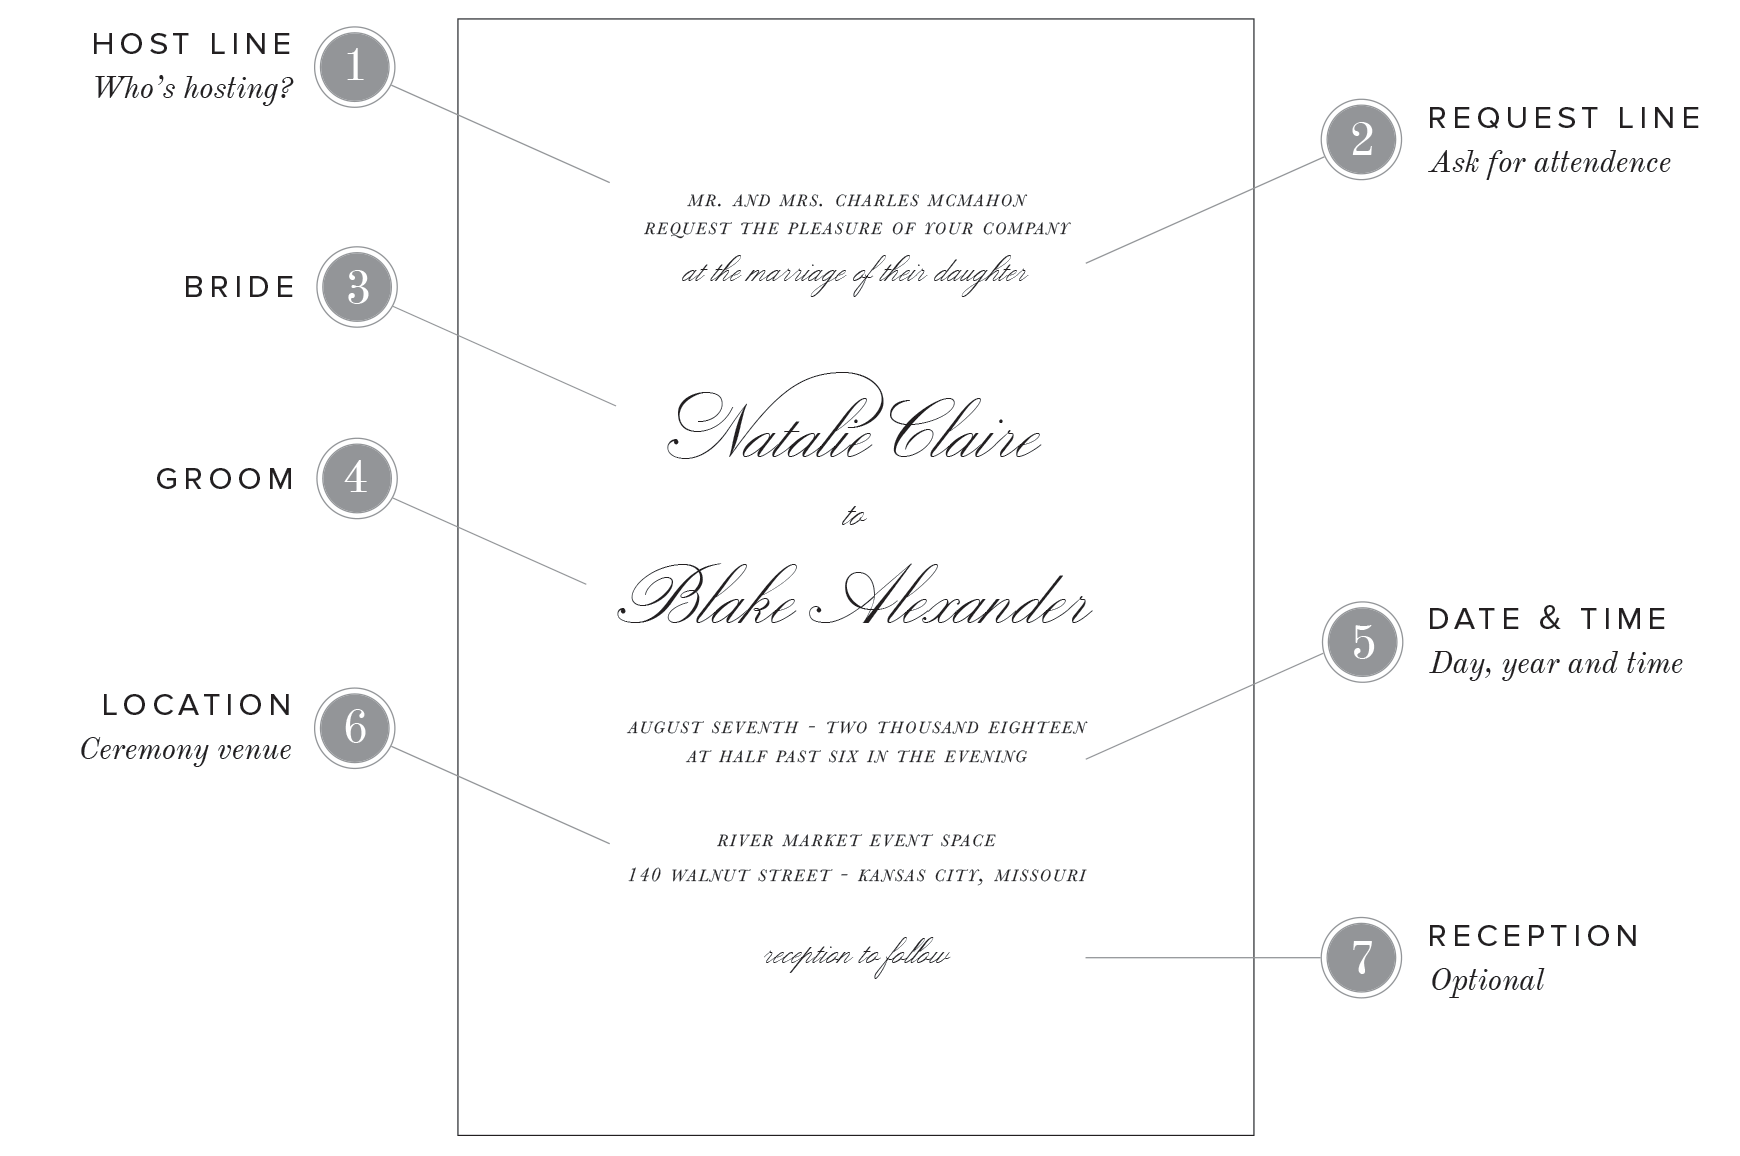 Wedding Invitation Wording | Multimatrimony - Tamil Matrimony Blog